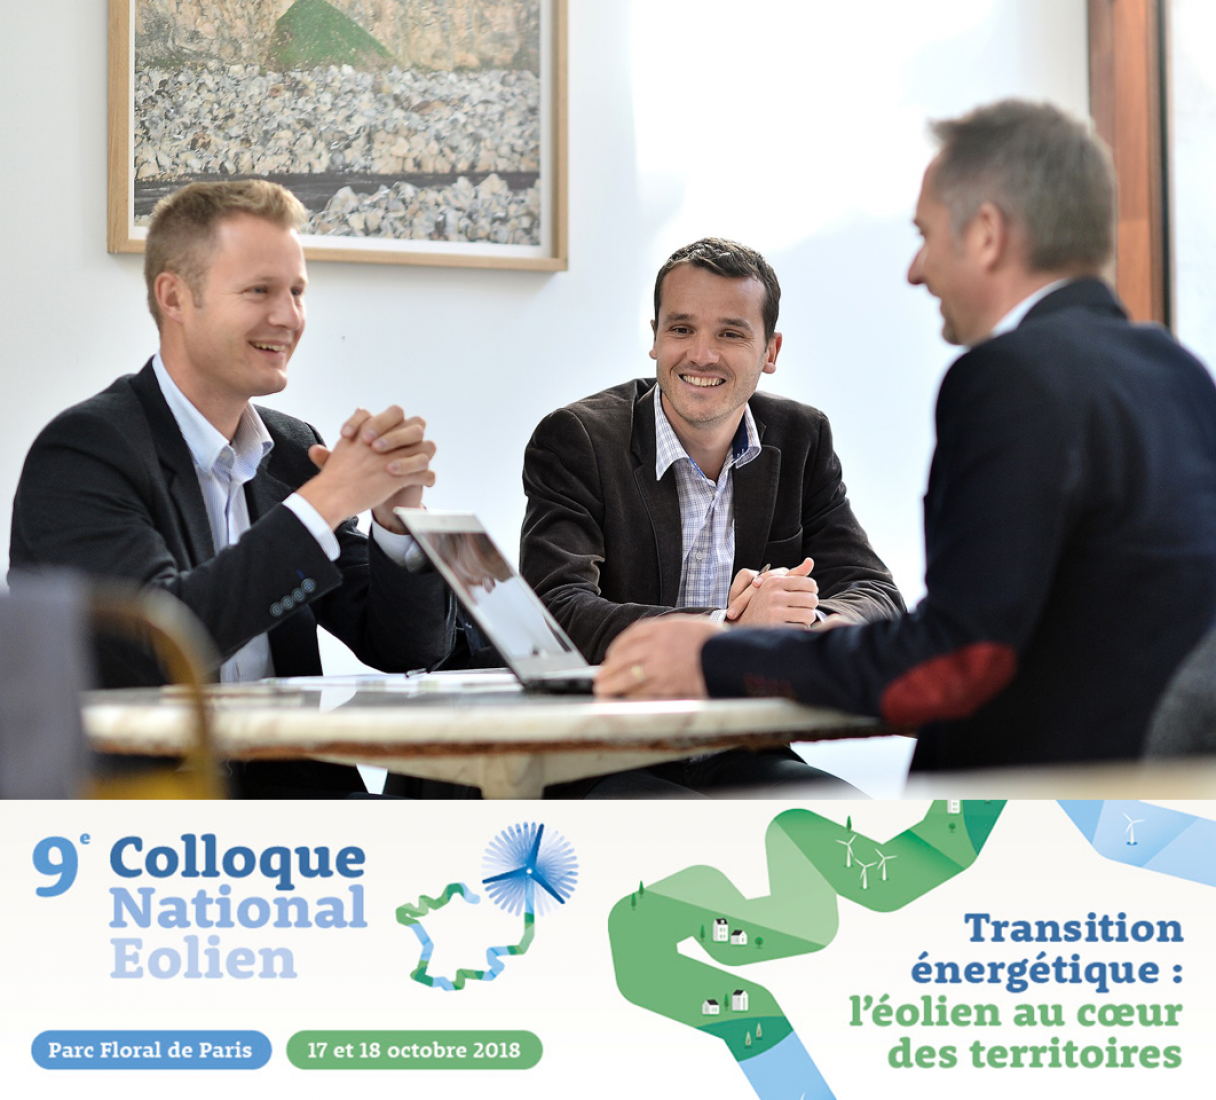 9ème Colloque National Eolien 17 et 18 Octobre 2018